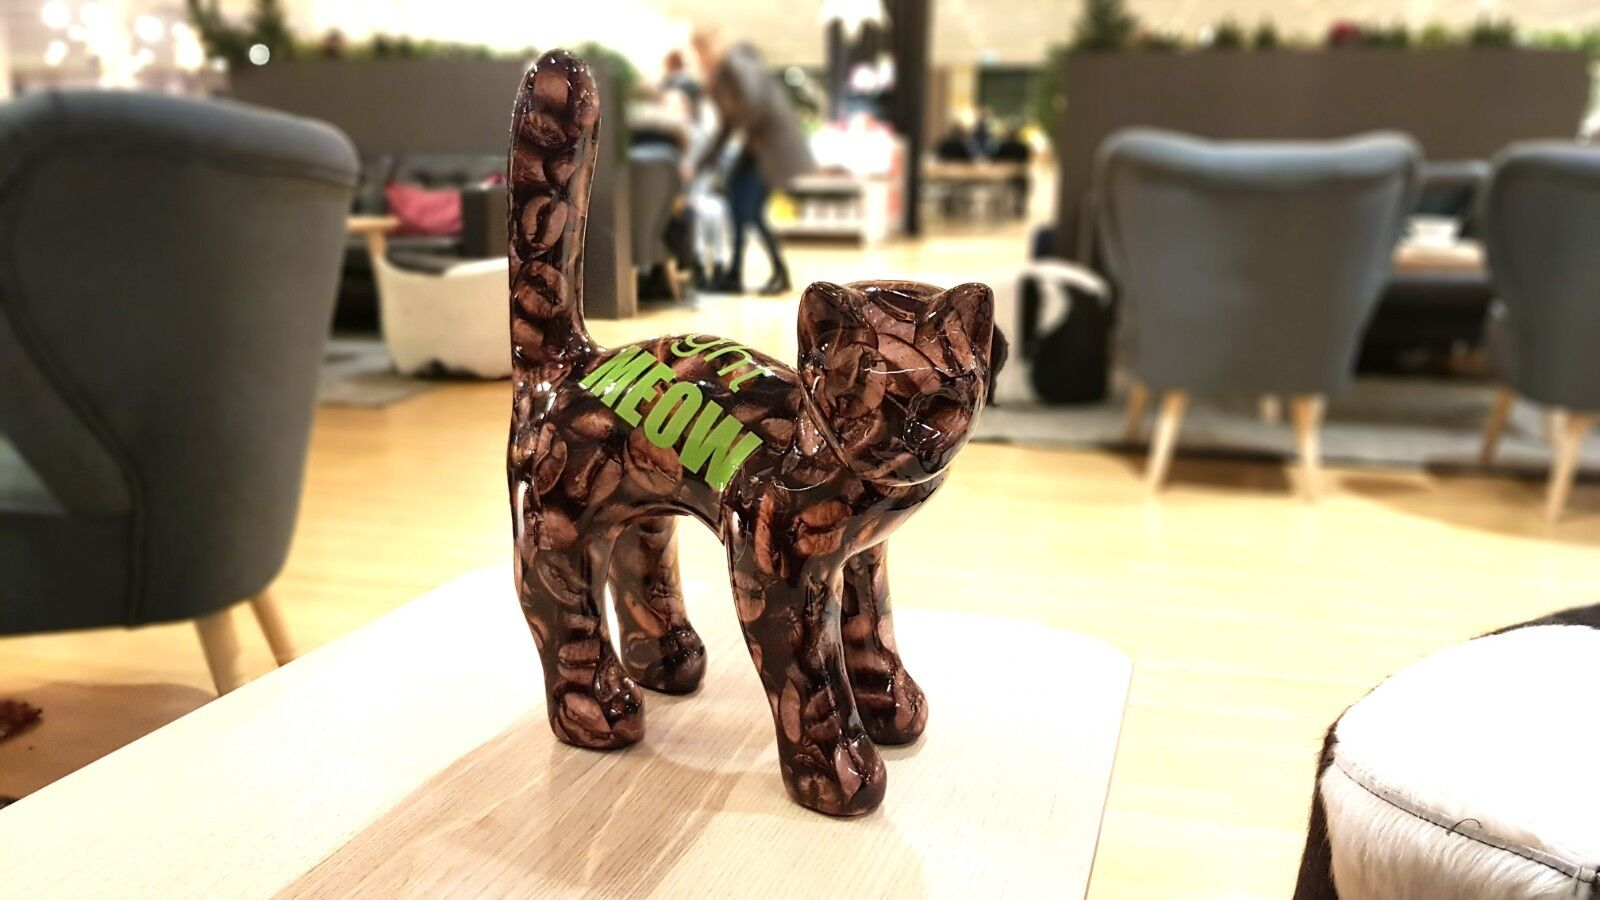 Cat Coffe Right Right Right Meow Unique Handmade Sculpture édition limitée, no 4/40. 40274b